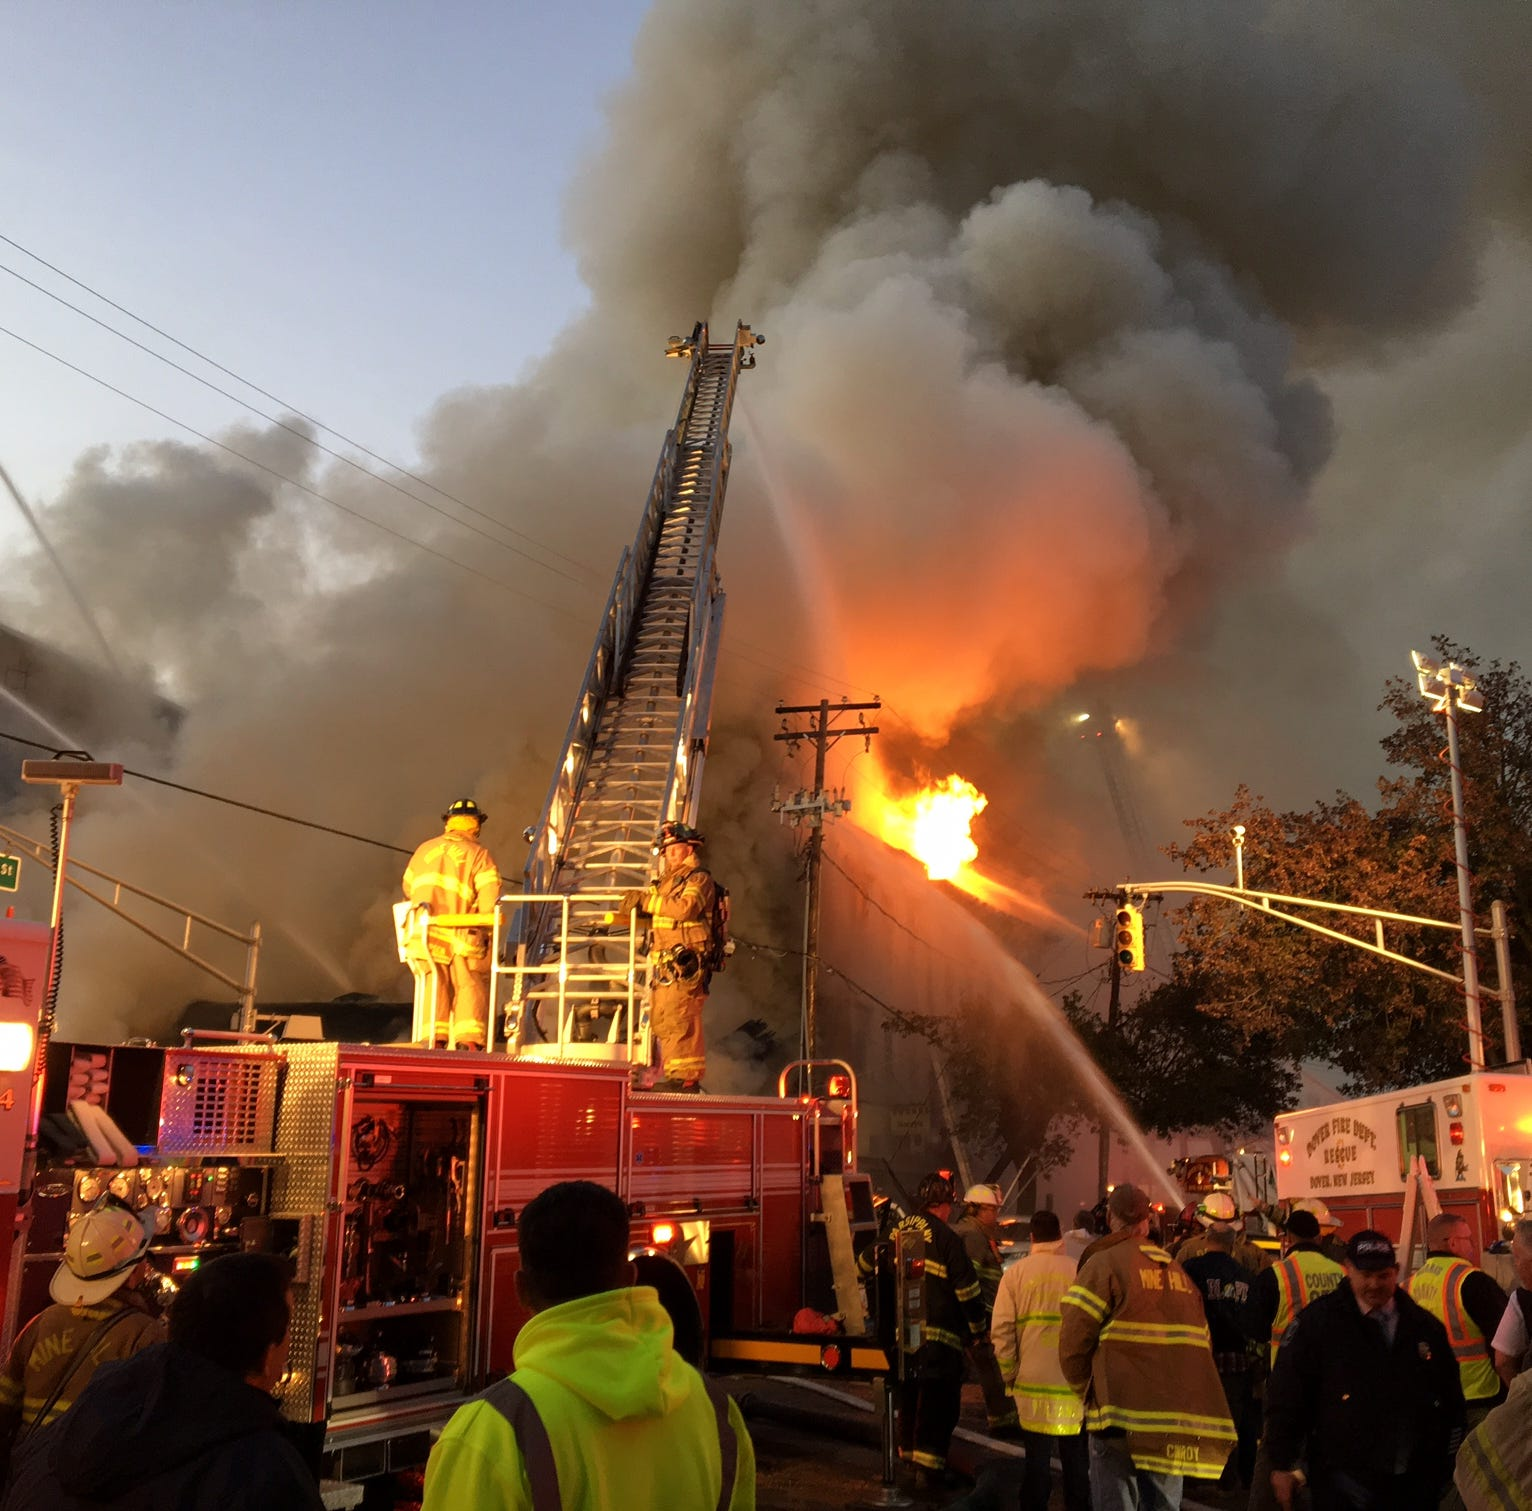 Building collapses in massive Dover fire; no injuries reported